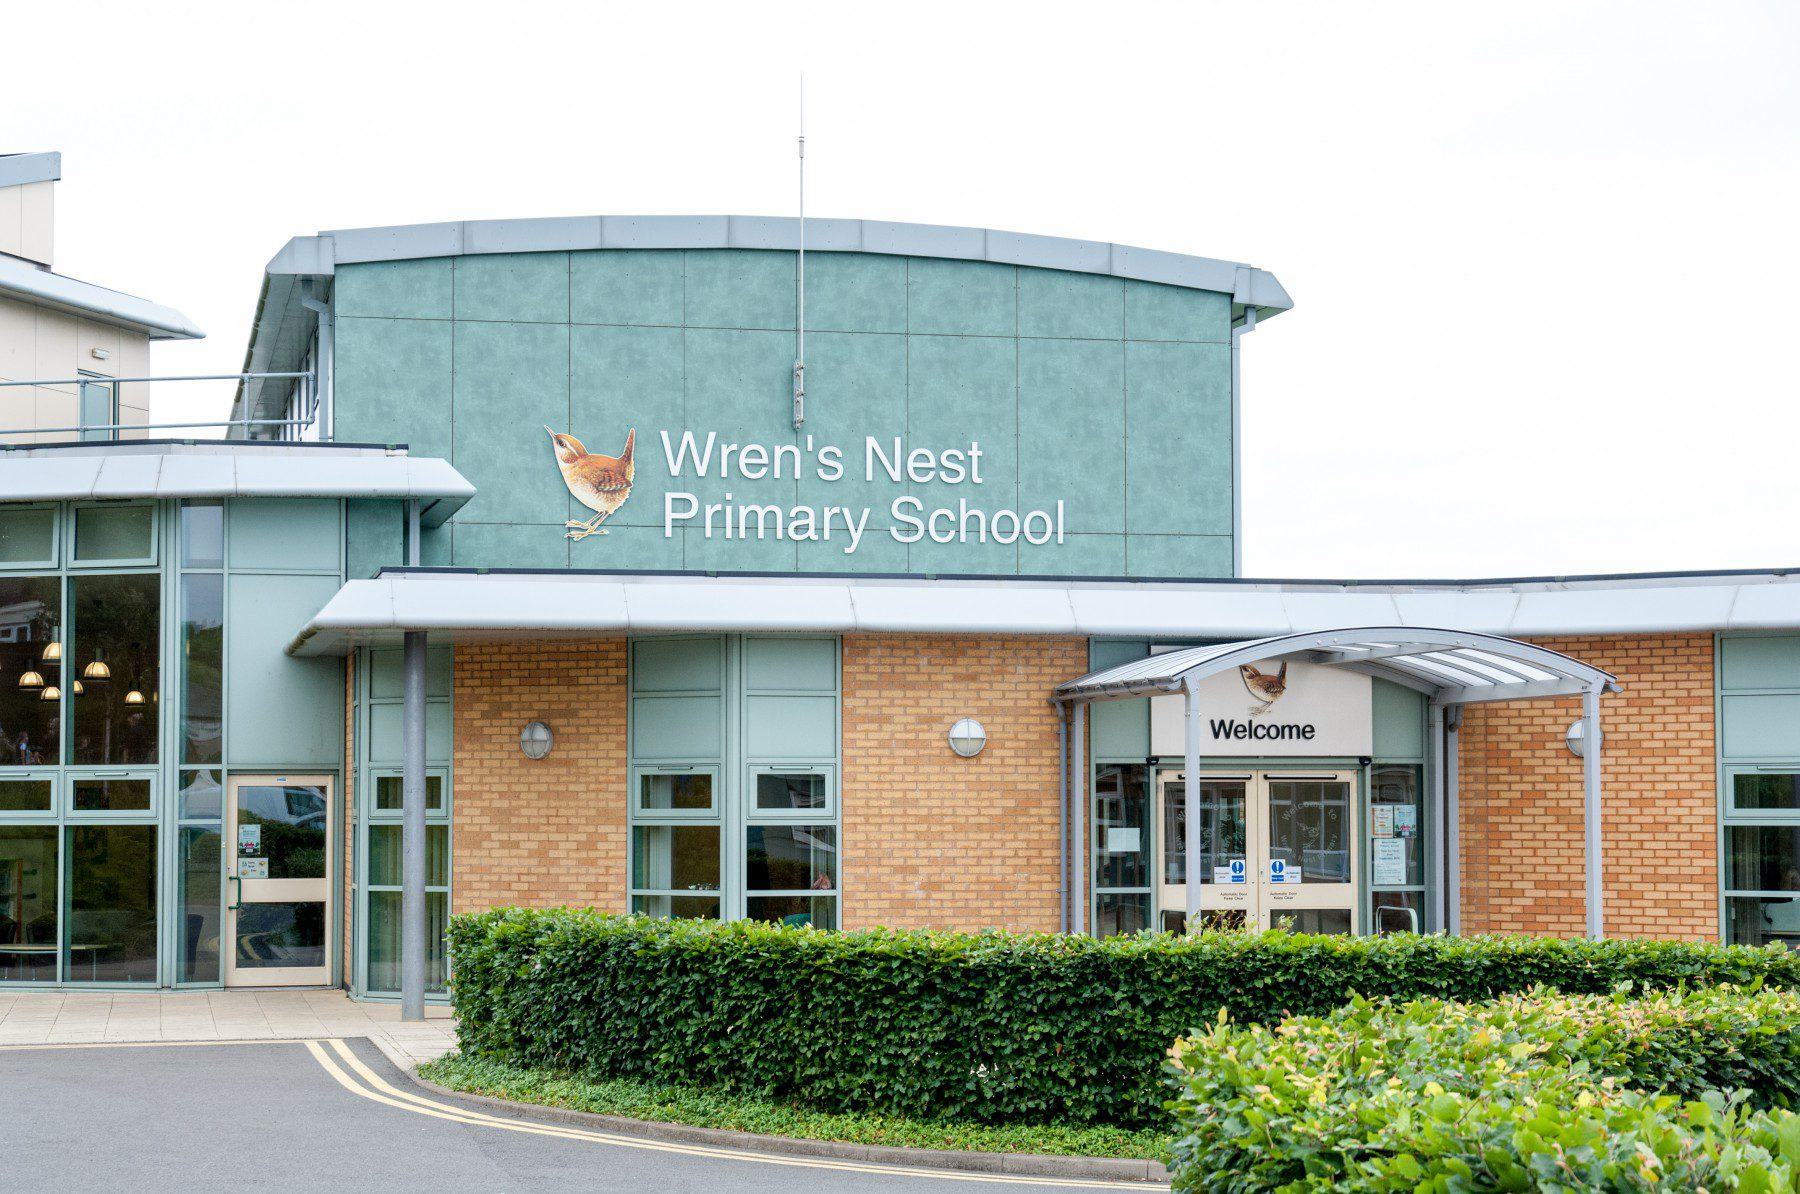 Wren's Nest Primary